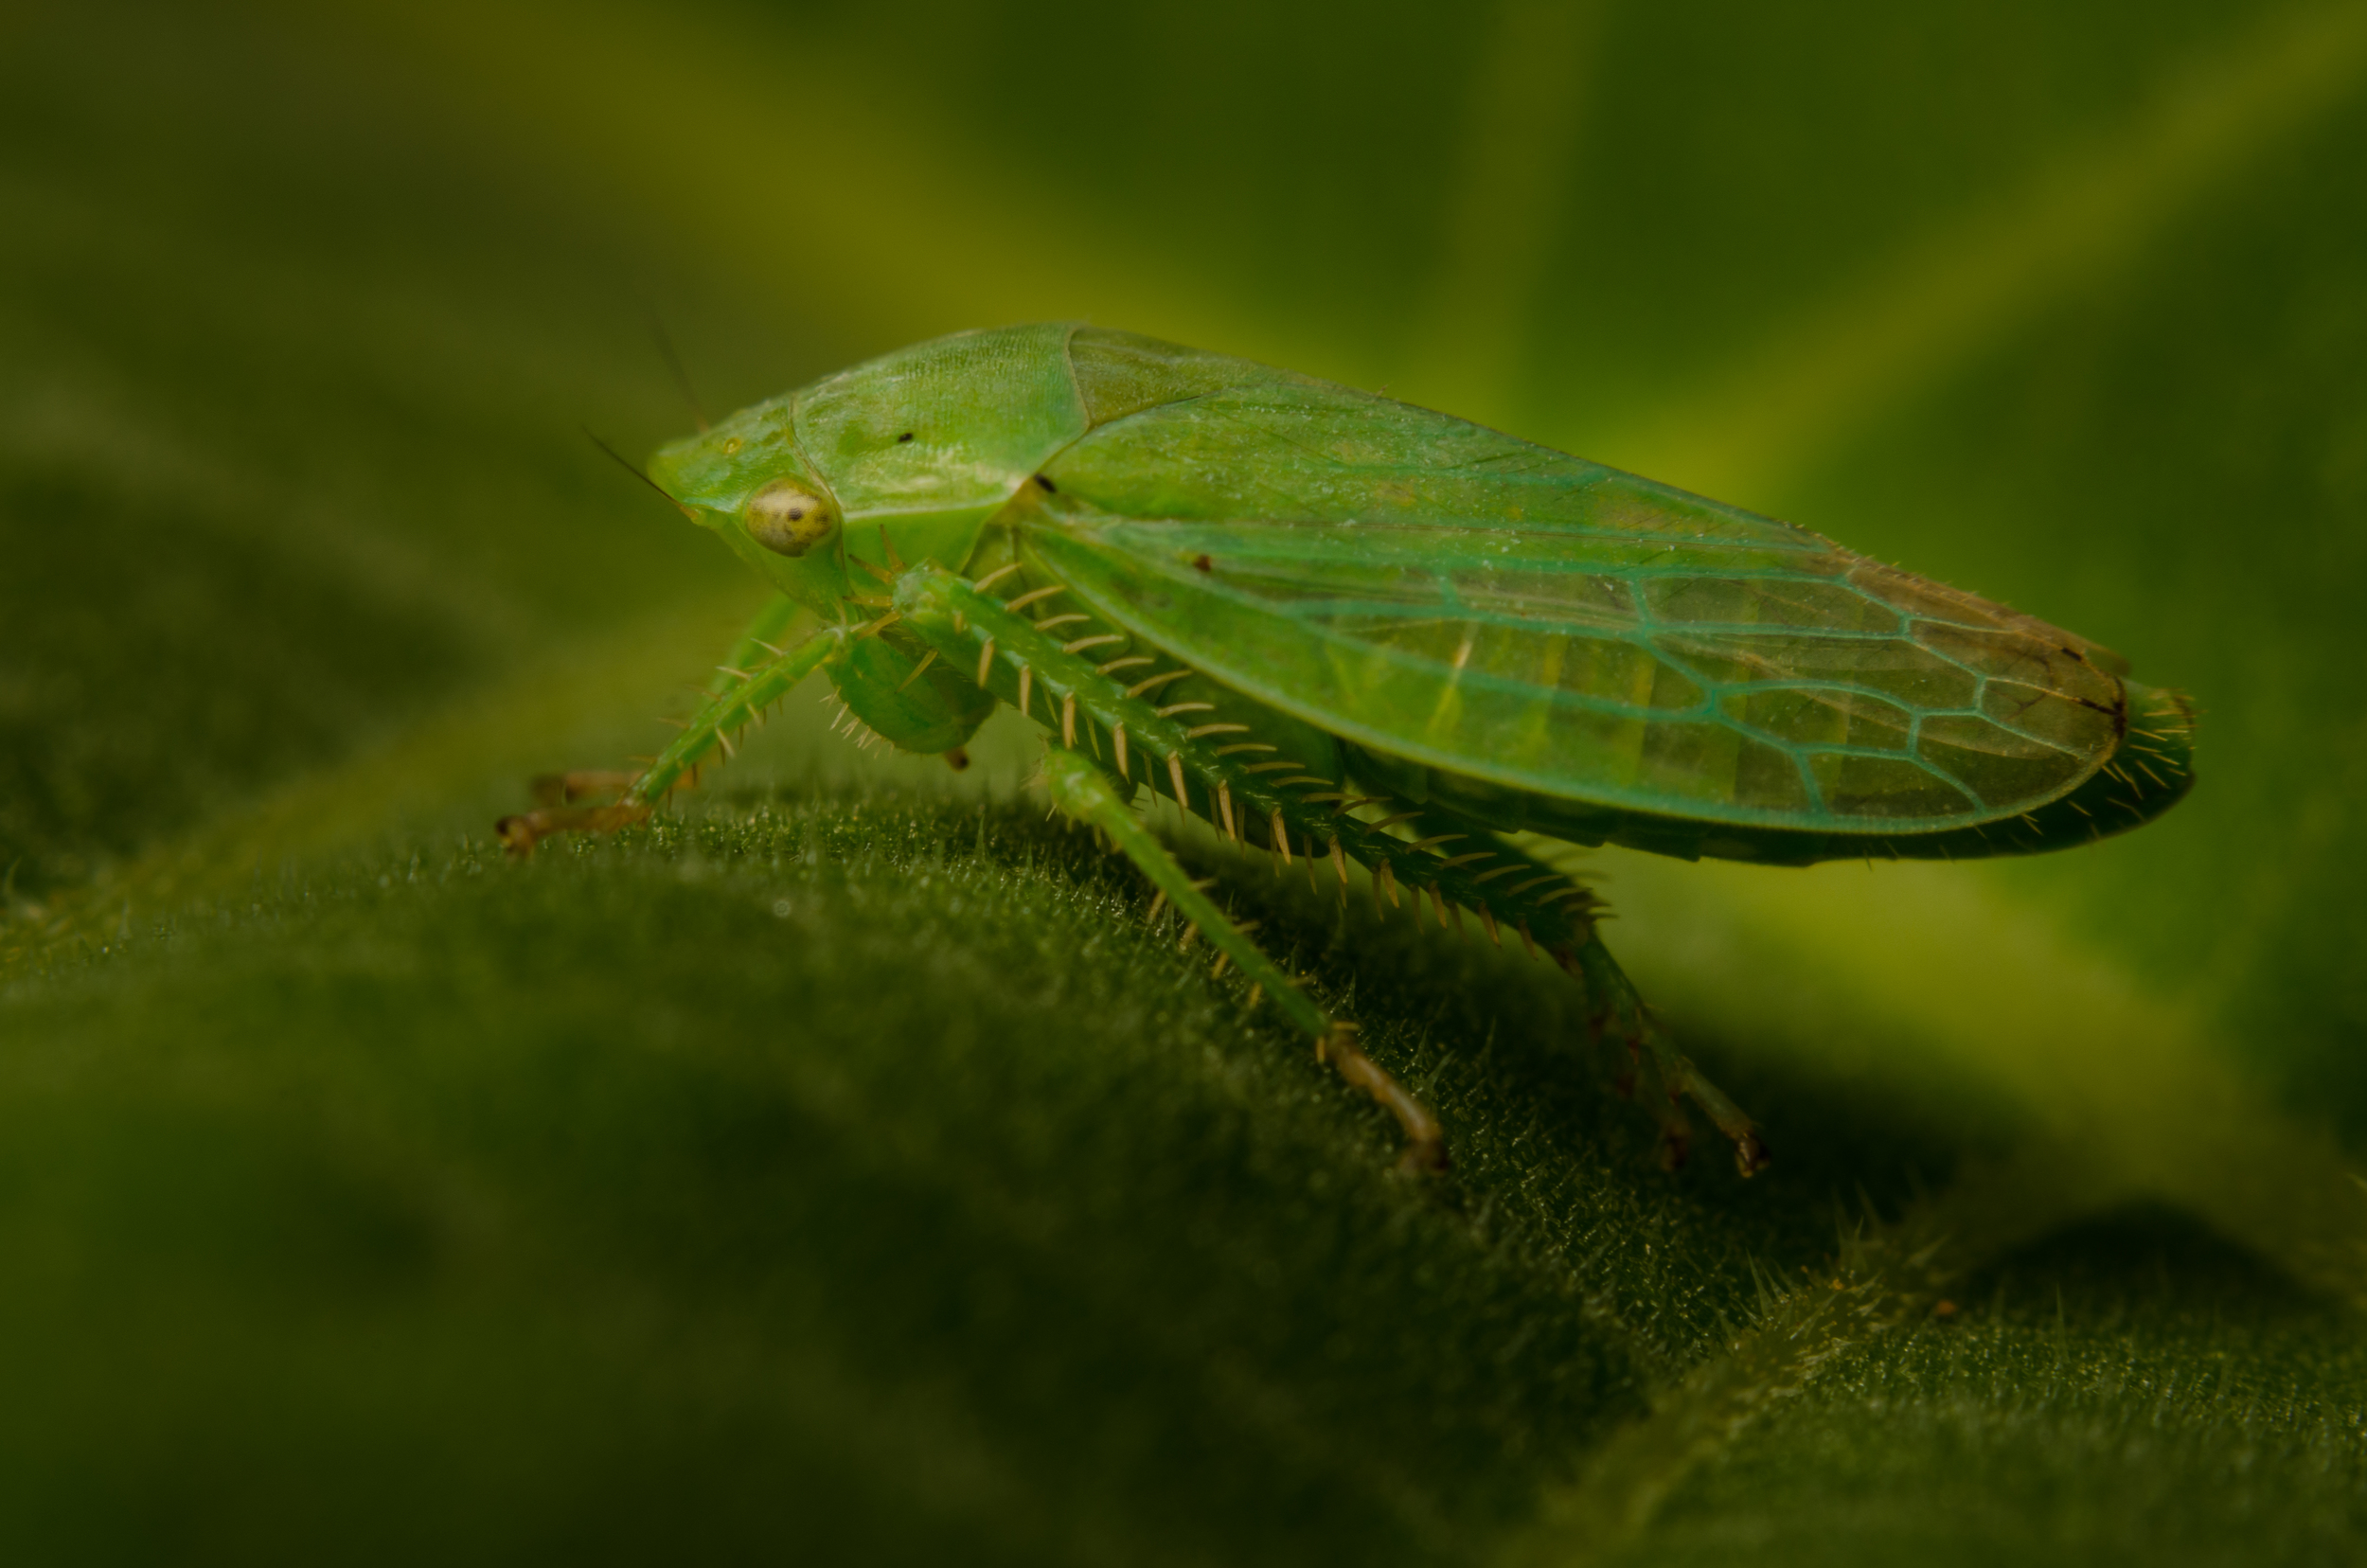 Leafhopper  Nikon D7000 ISO 200 f/11 1/200 sec. sec. Nikkor 50mm f/1.4 reversed with BR-2 Reversing Ring plus PK-3 27.5mm extension tubes, off-camera flash with modified soft box.